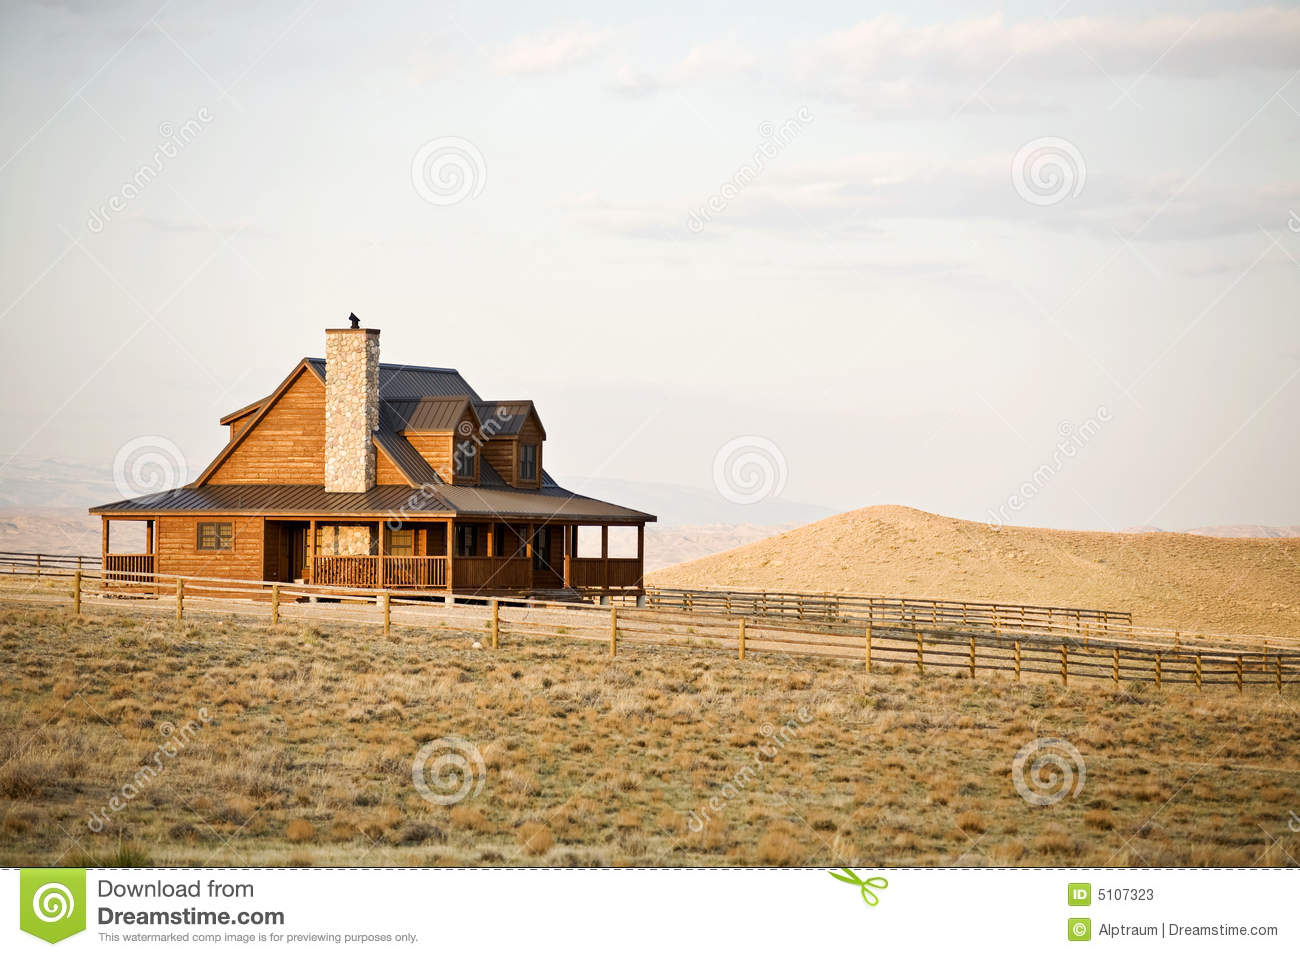 Maison de ranch dans midwest photos stock image 5107323 for Ranch occidentale